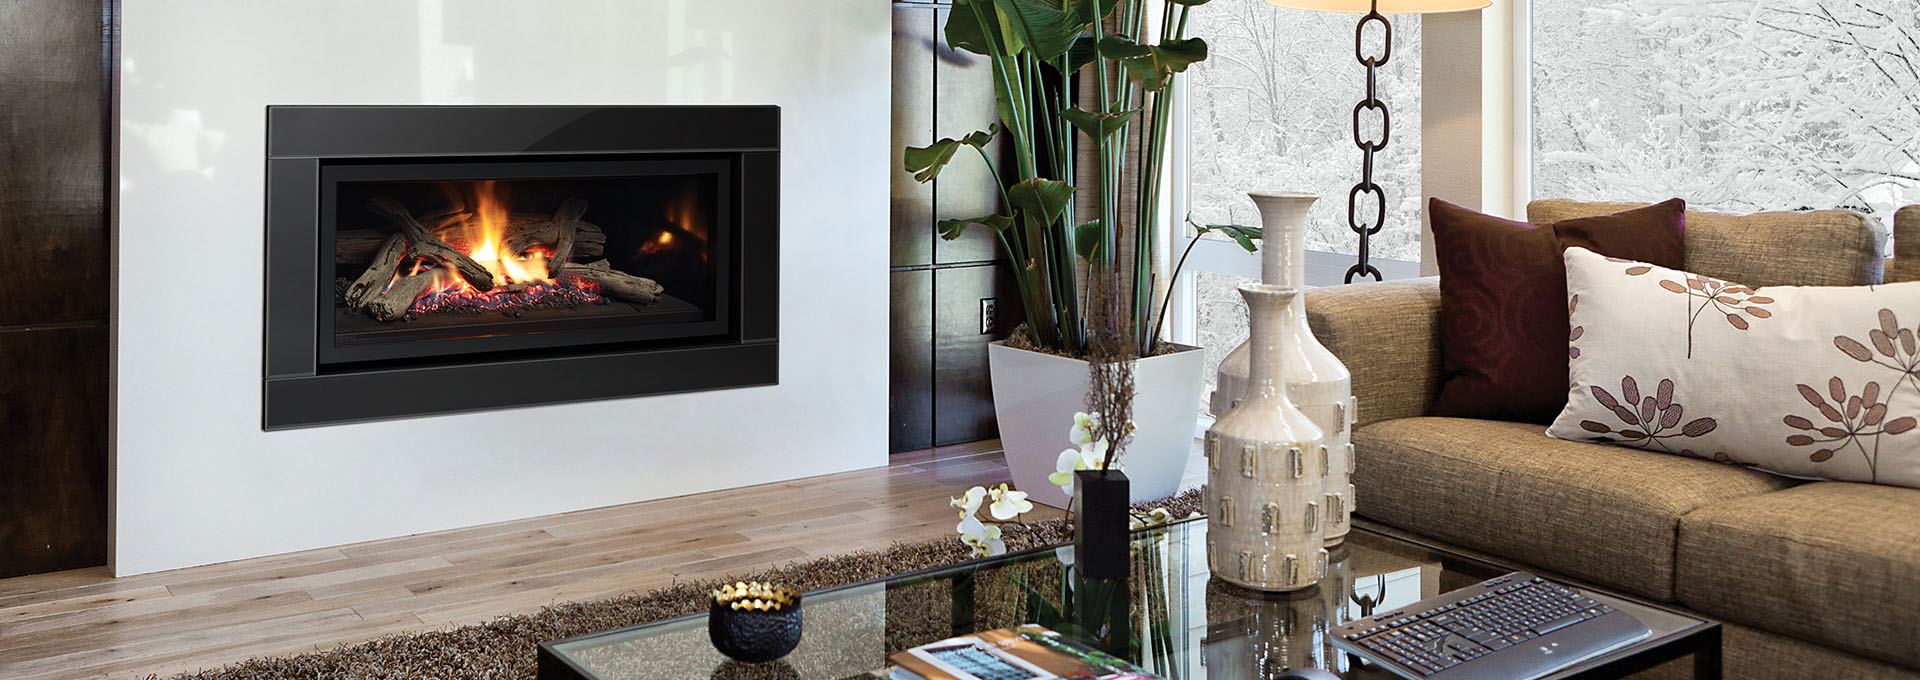 Design Modern Gas Fireplace ultimate u900e modern gas fireplace contemporary shown with inner frame and verona glass surround in black